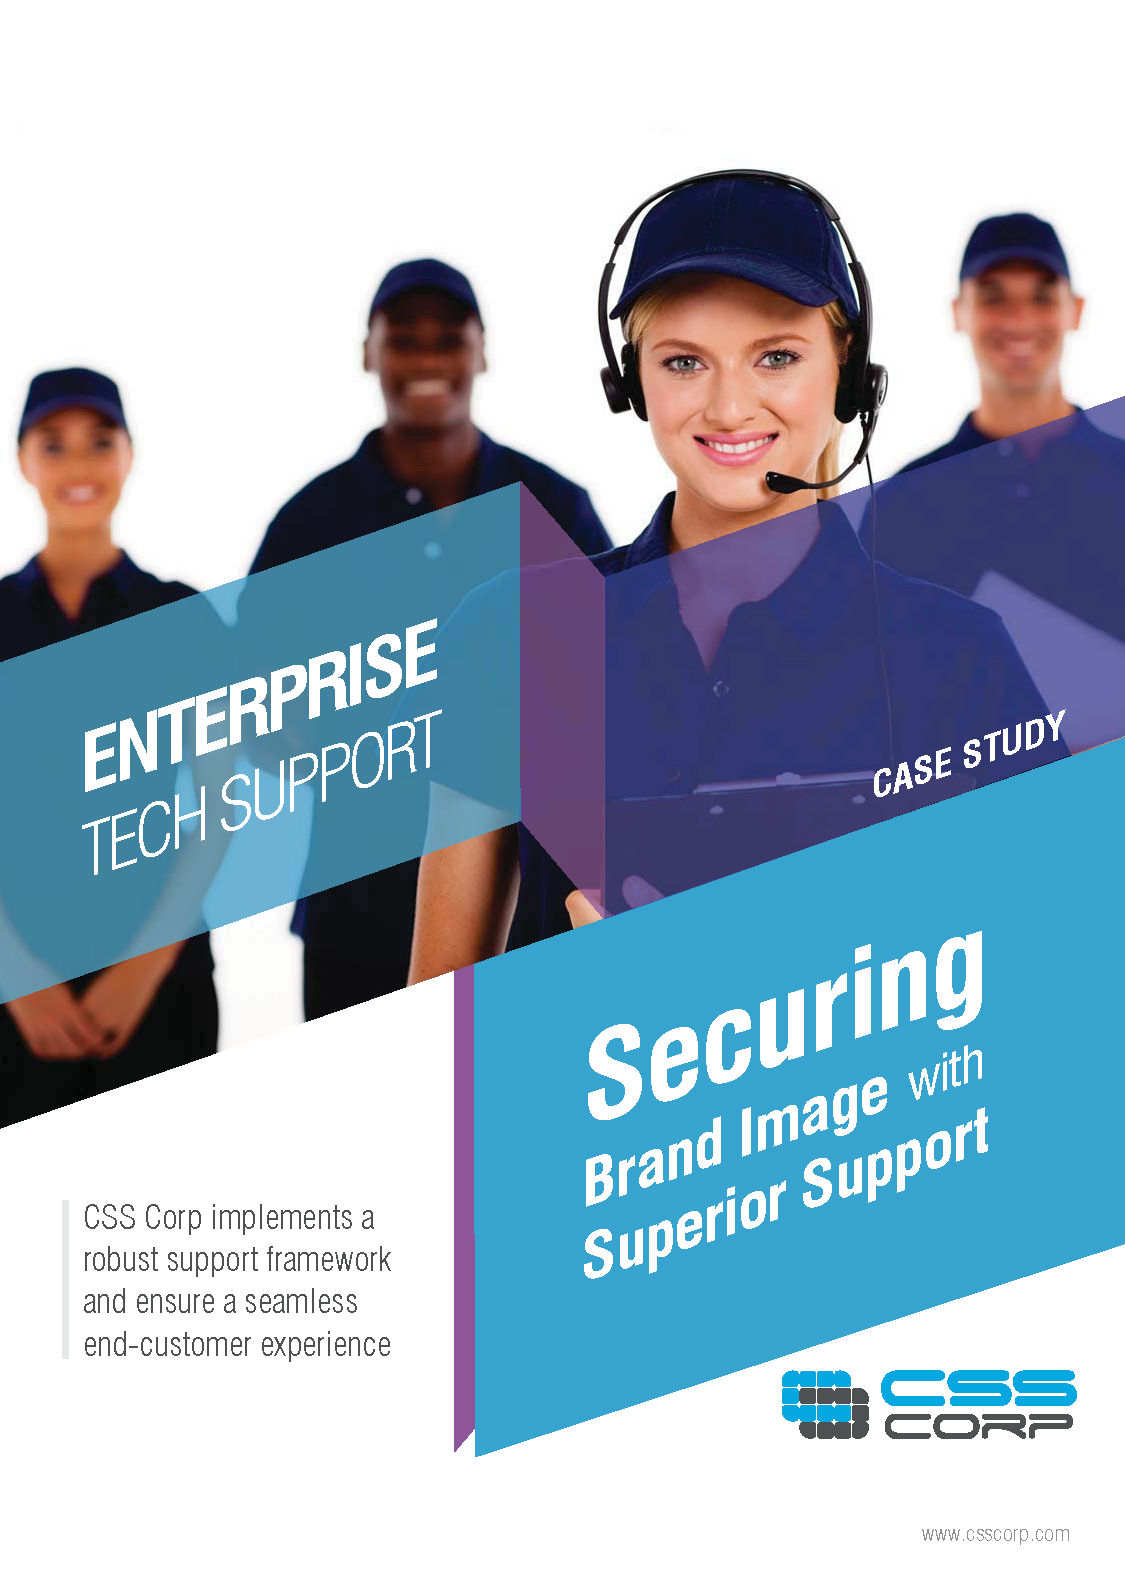 Securing Brand Image With Superior Support